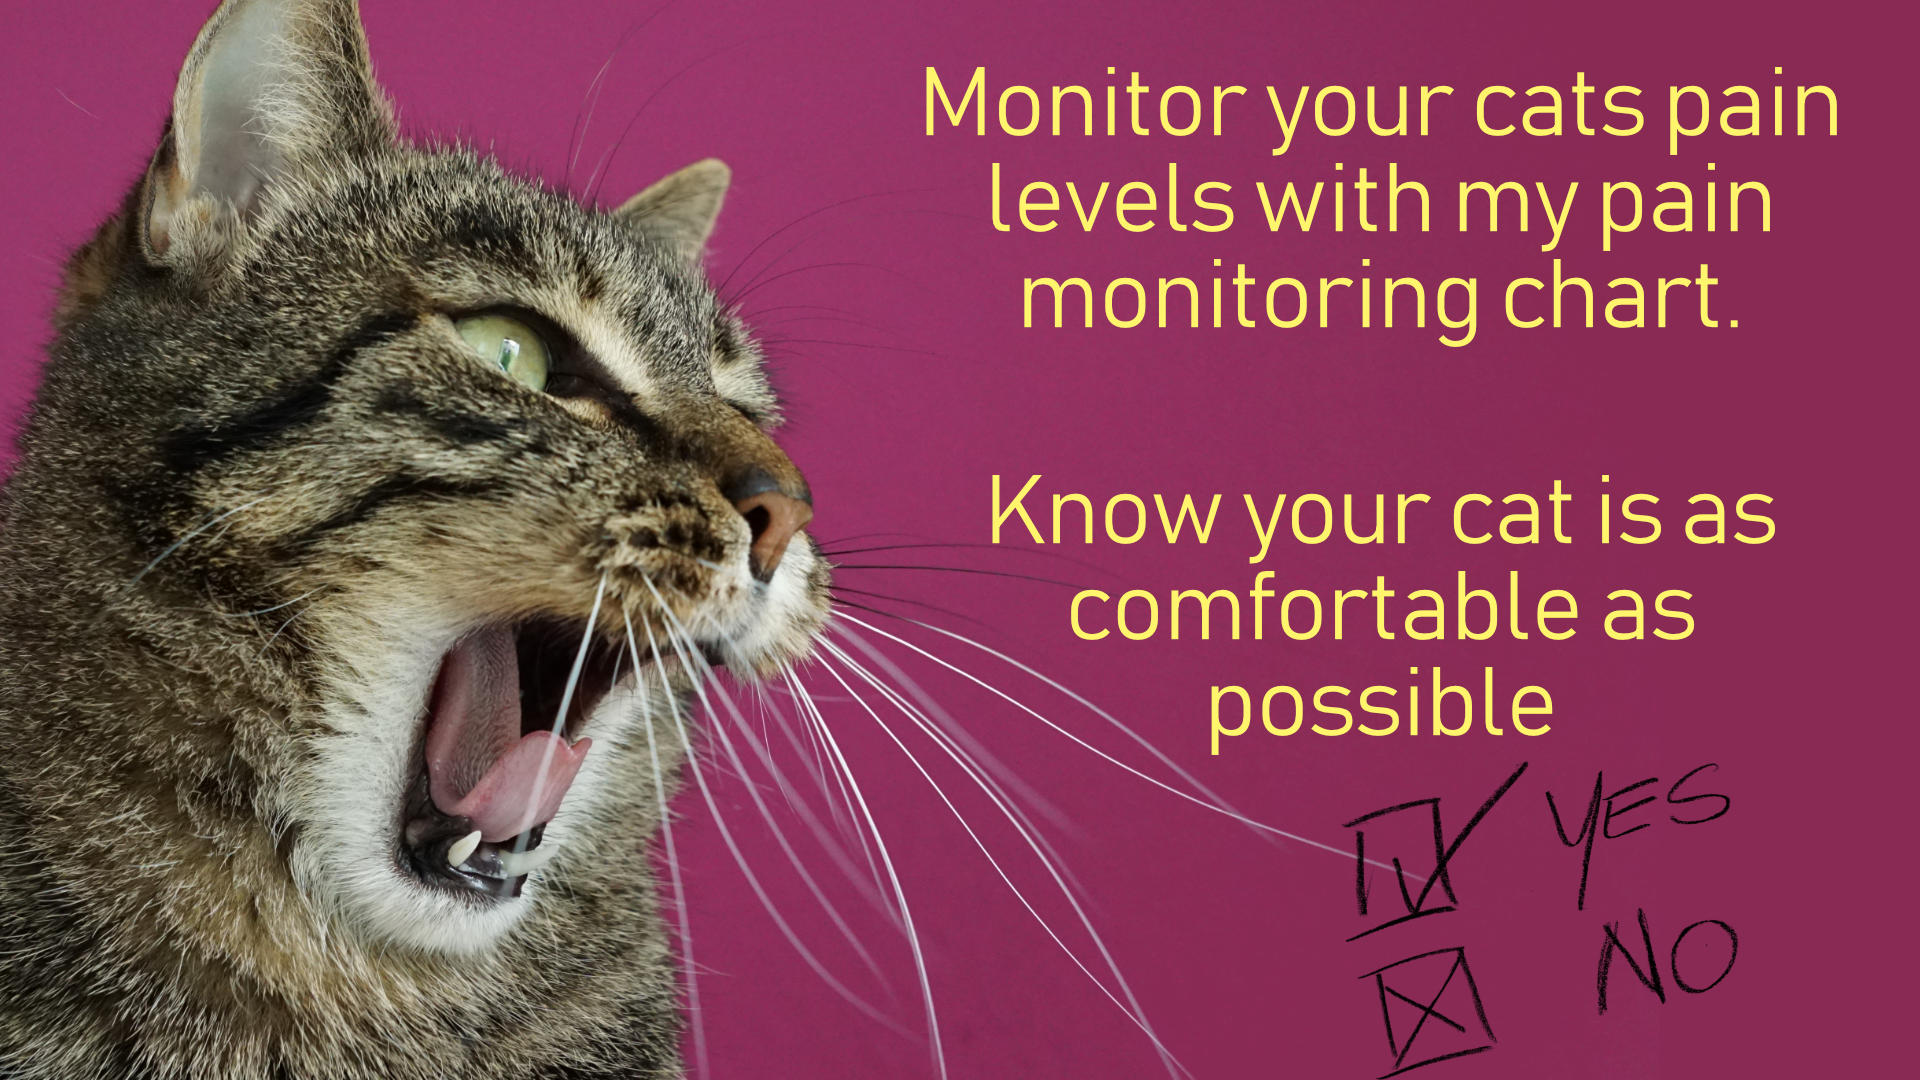 use the pain monitoring chart to check the drugs used to treat arthritis in cats are working and your cat is not in any pain from their arthritis